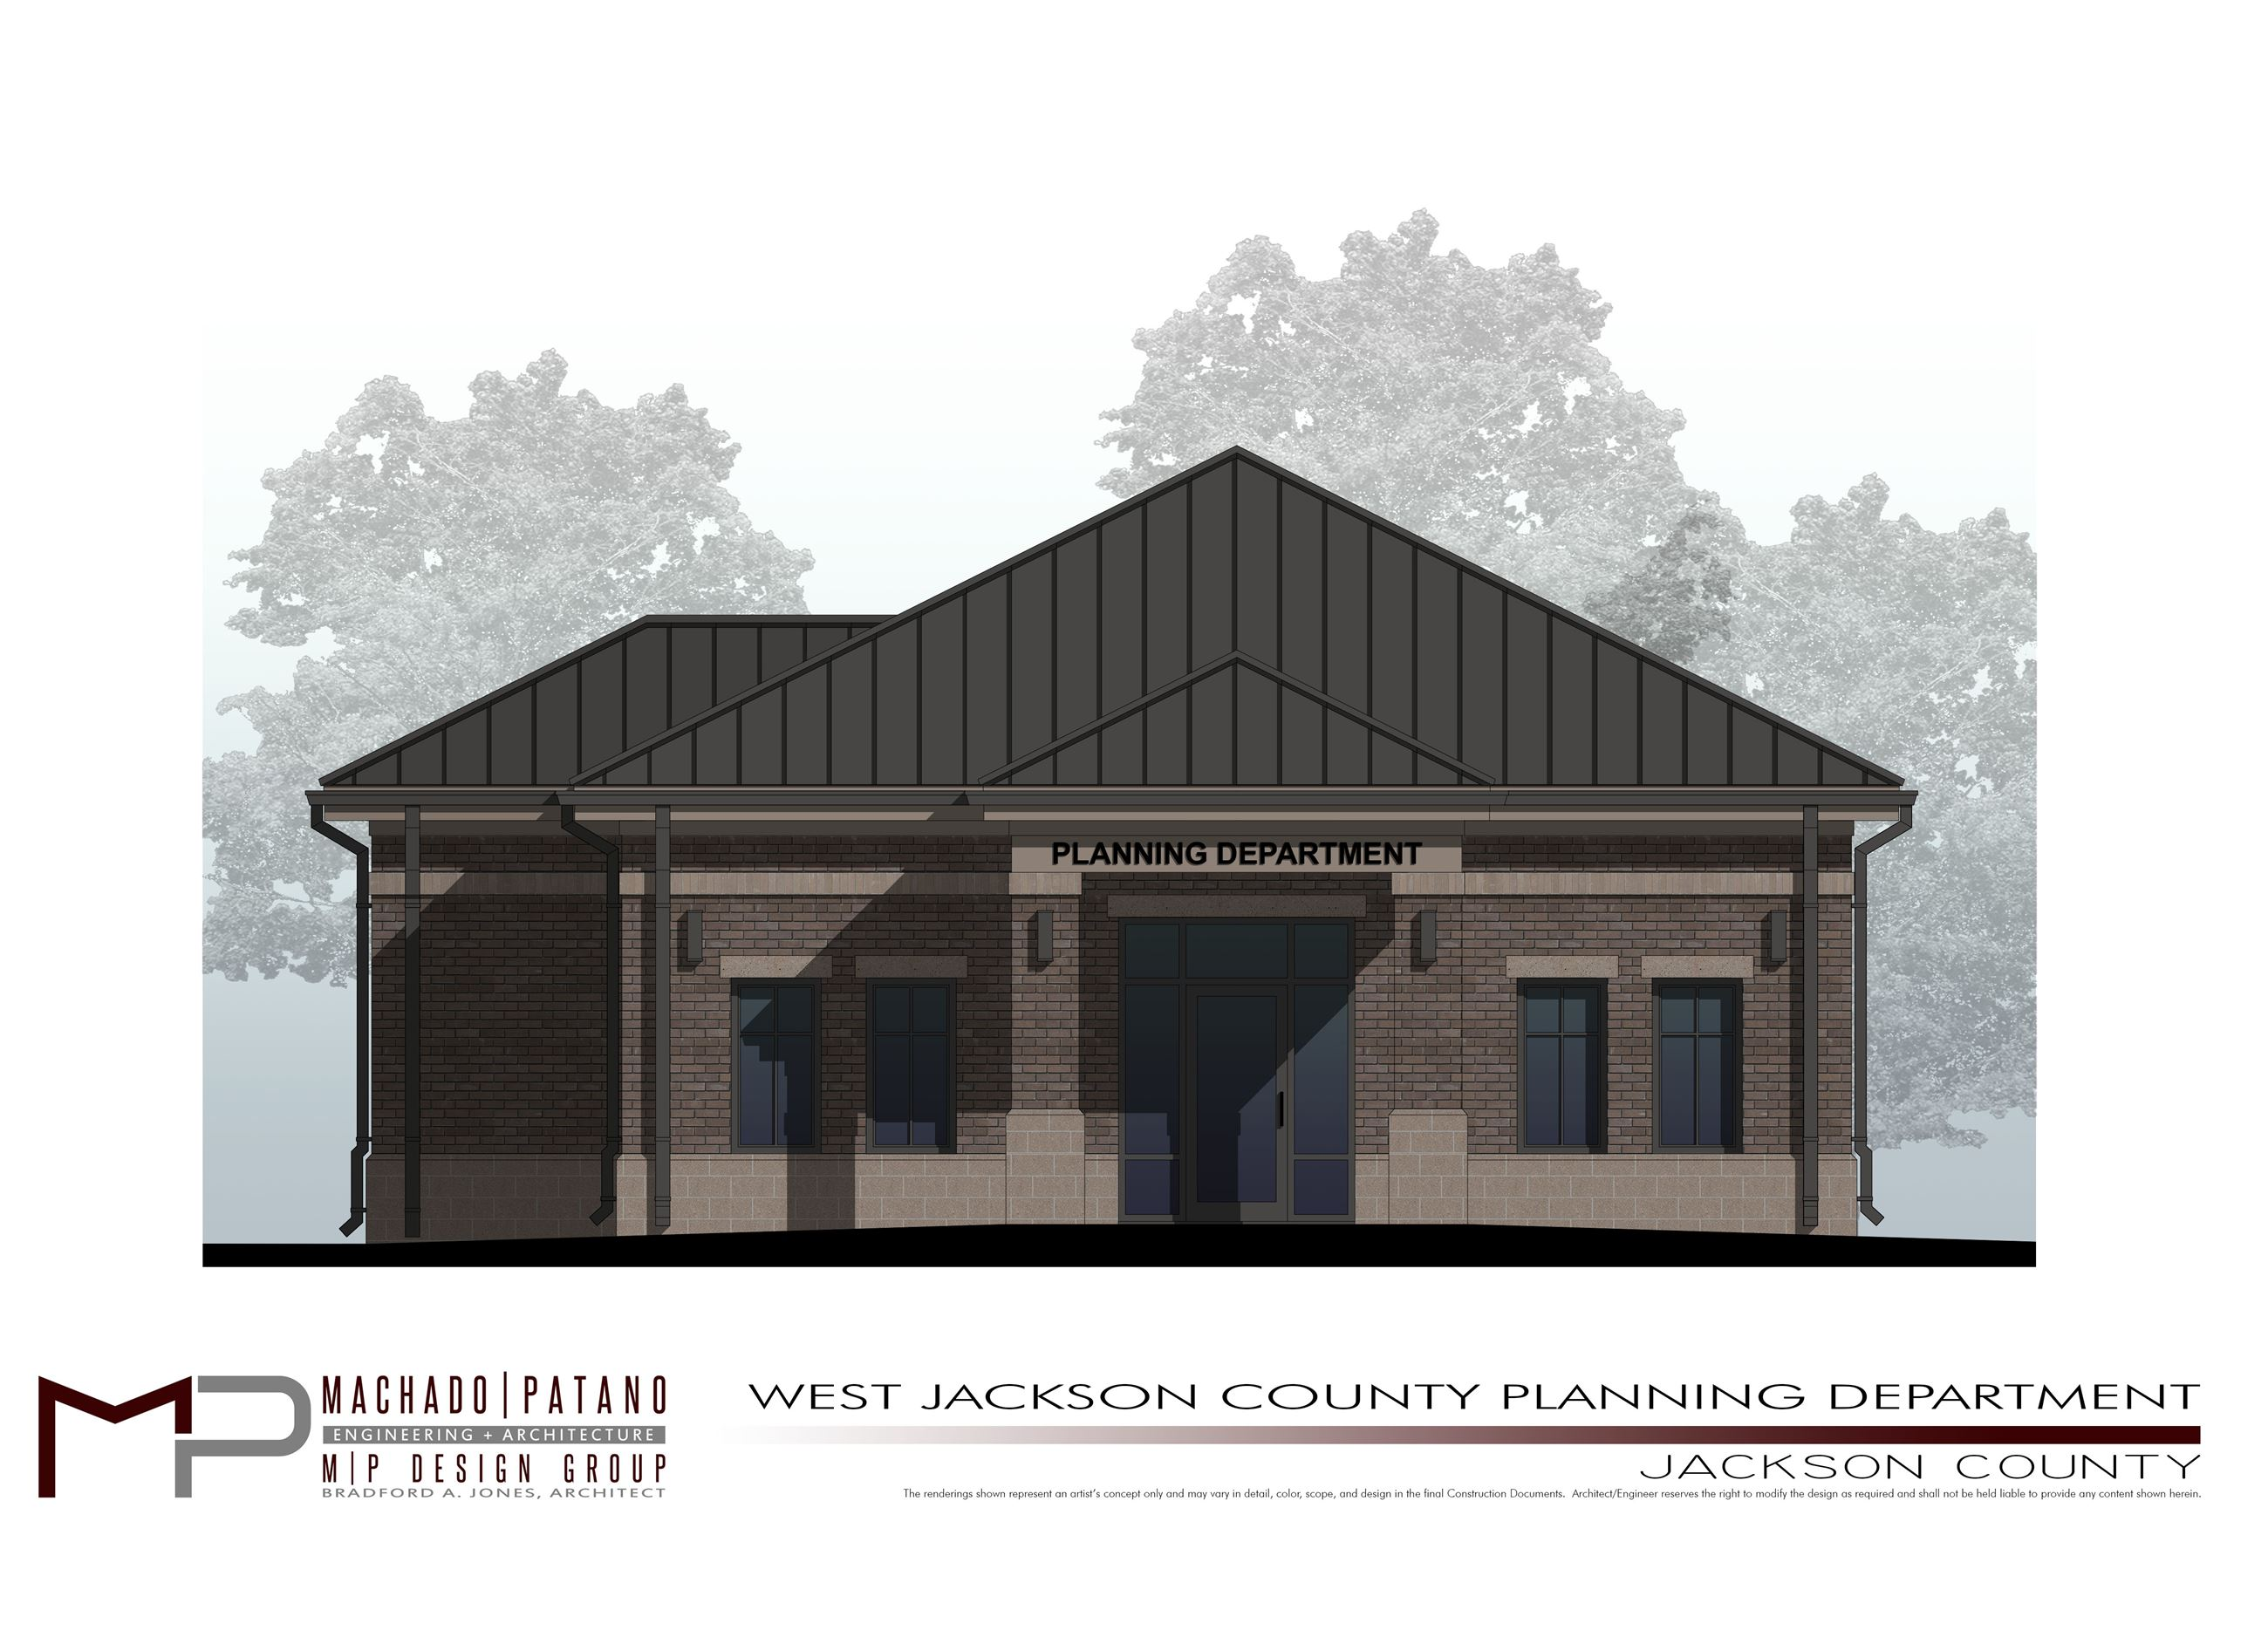 WJC Planning Office - Rendering of Proposed WJC Facility - JPG